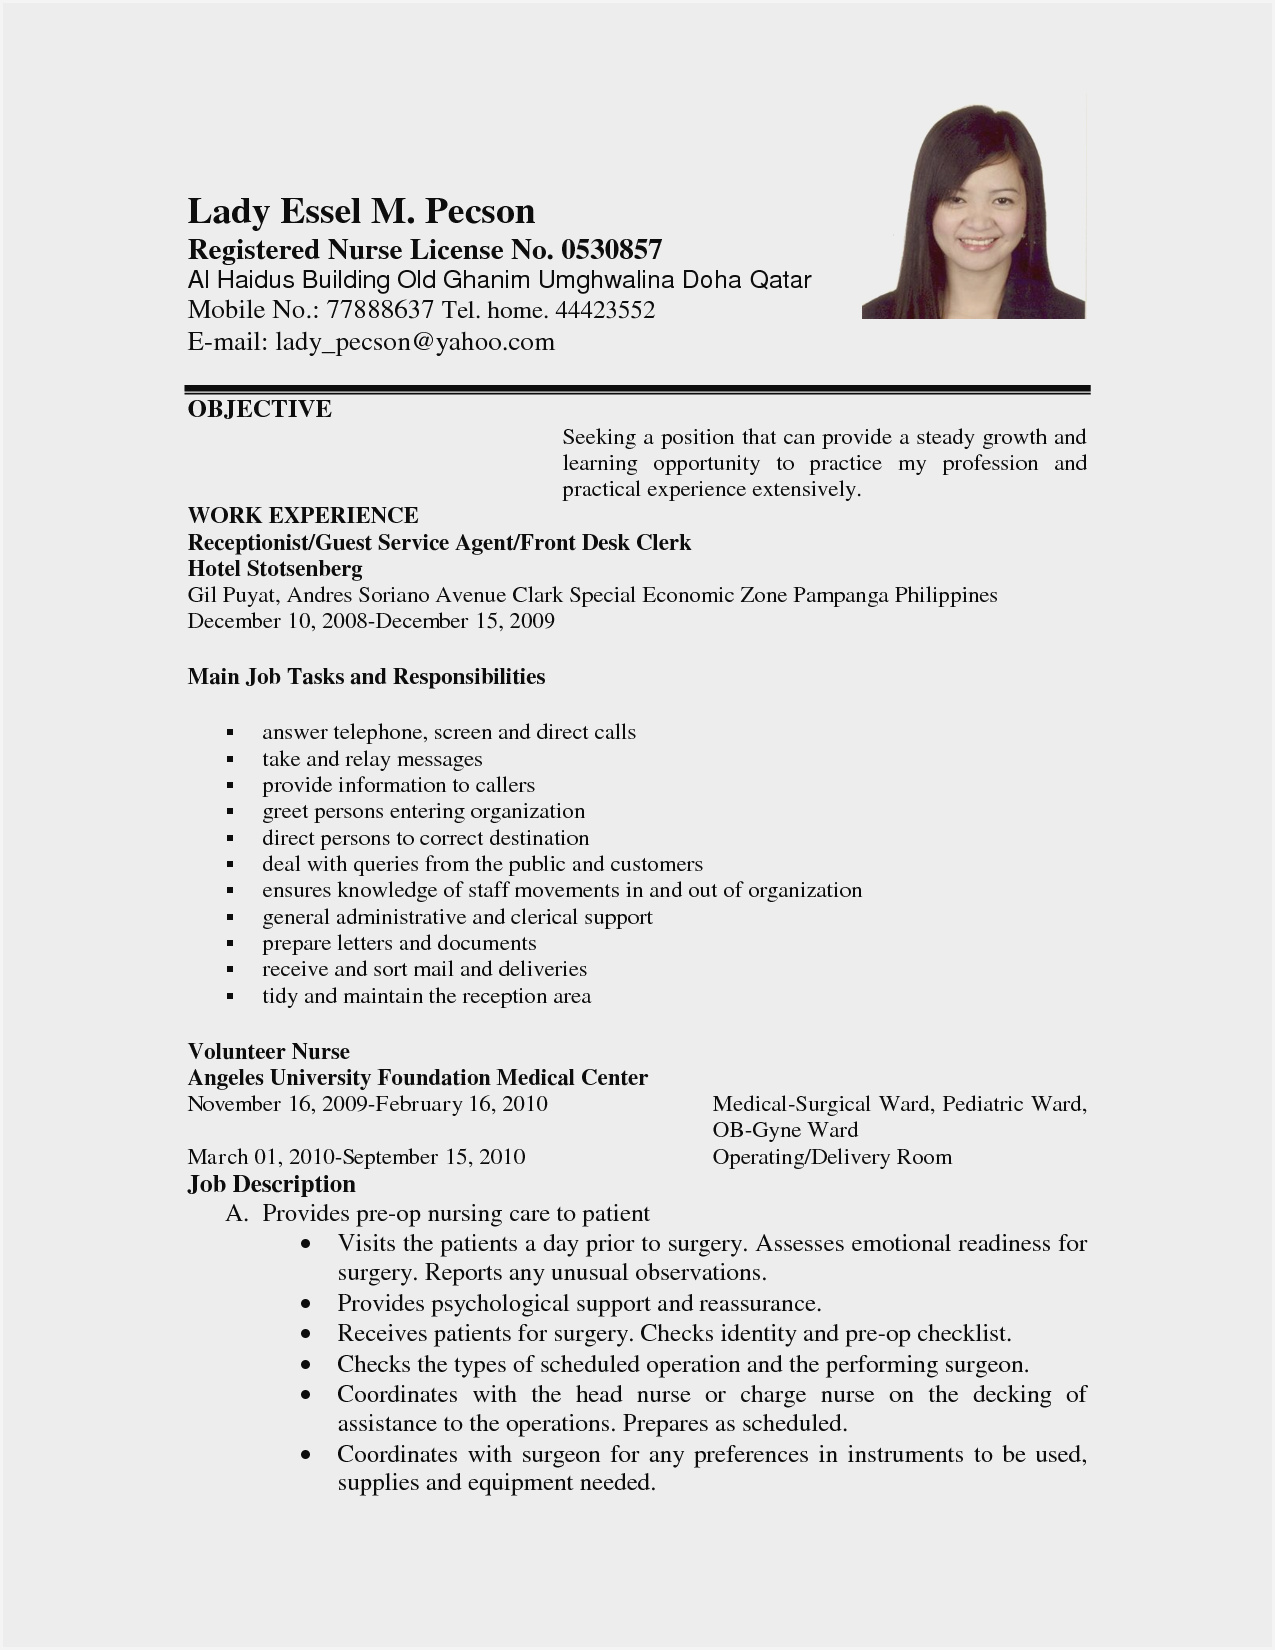 sample resume format for work abroad apply job entry level anthropology software engineer Resume Apply For Job Resume Format